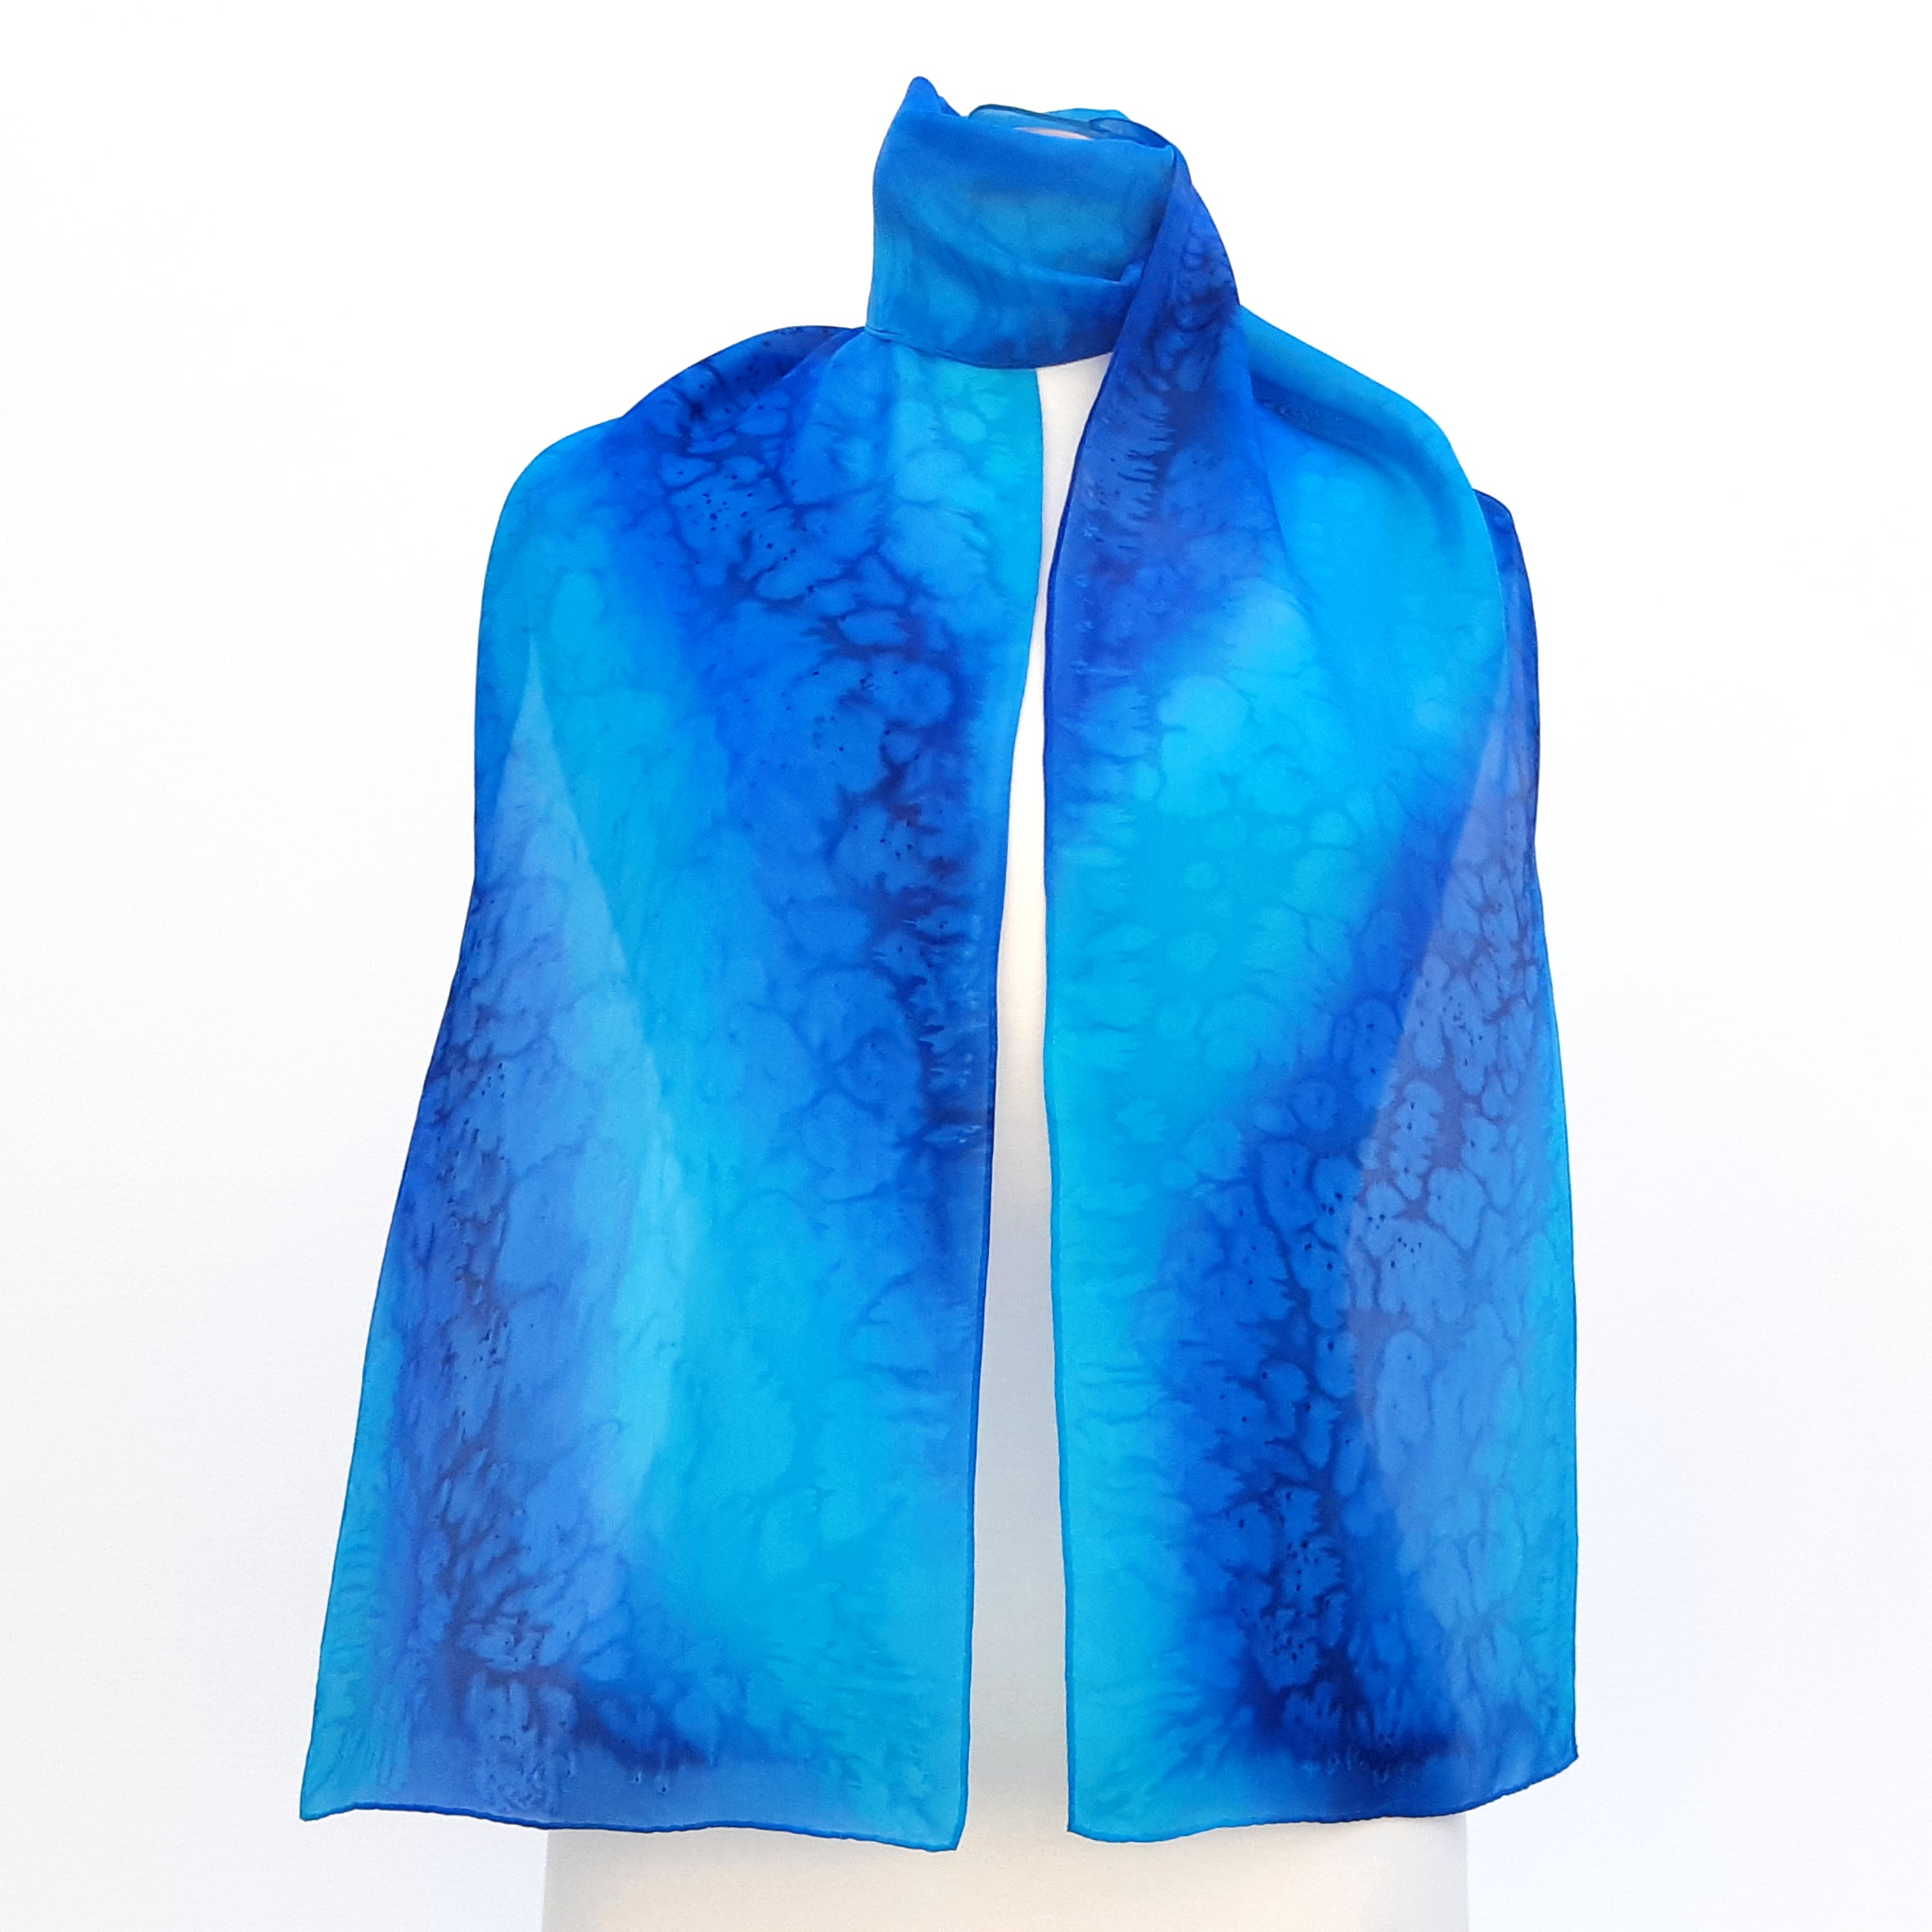 Painted silk blue scarf